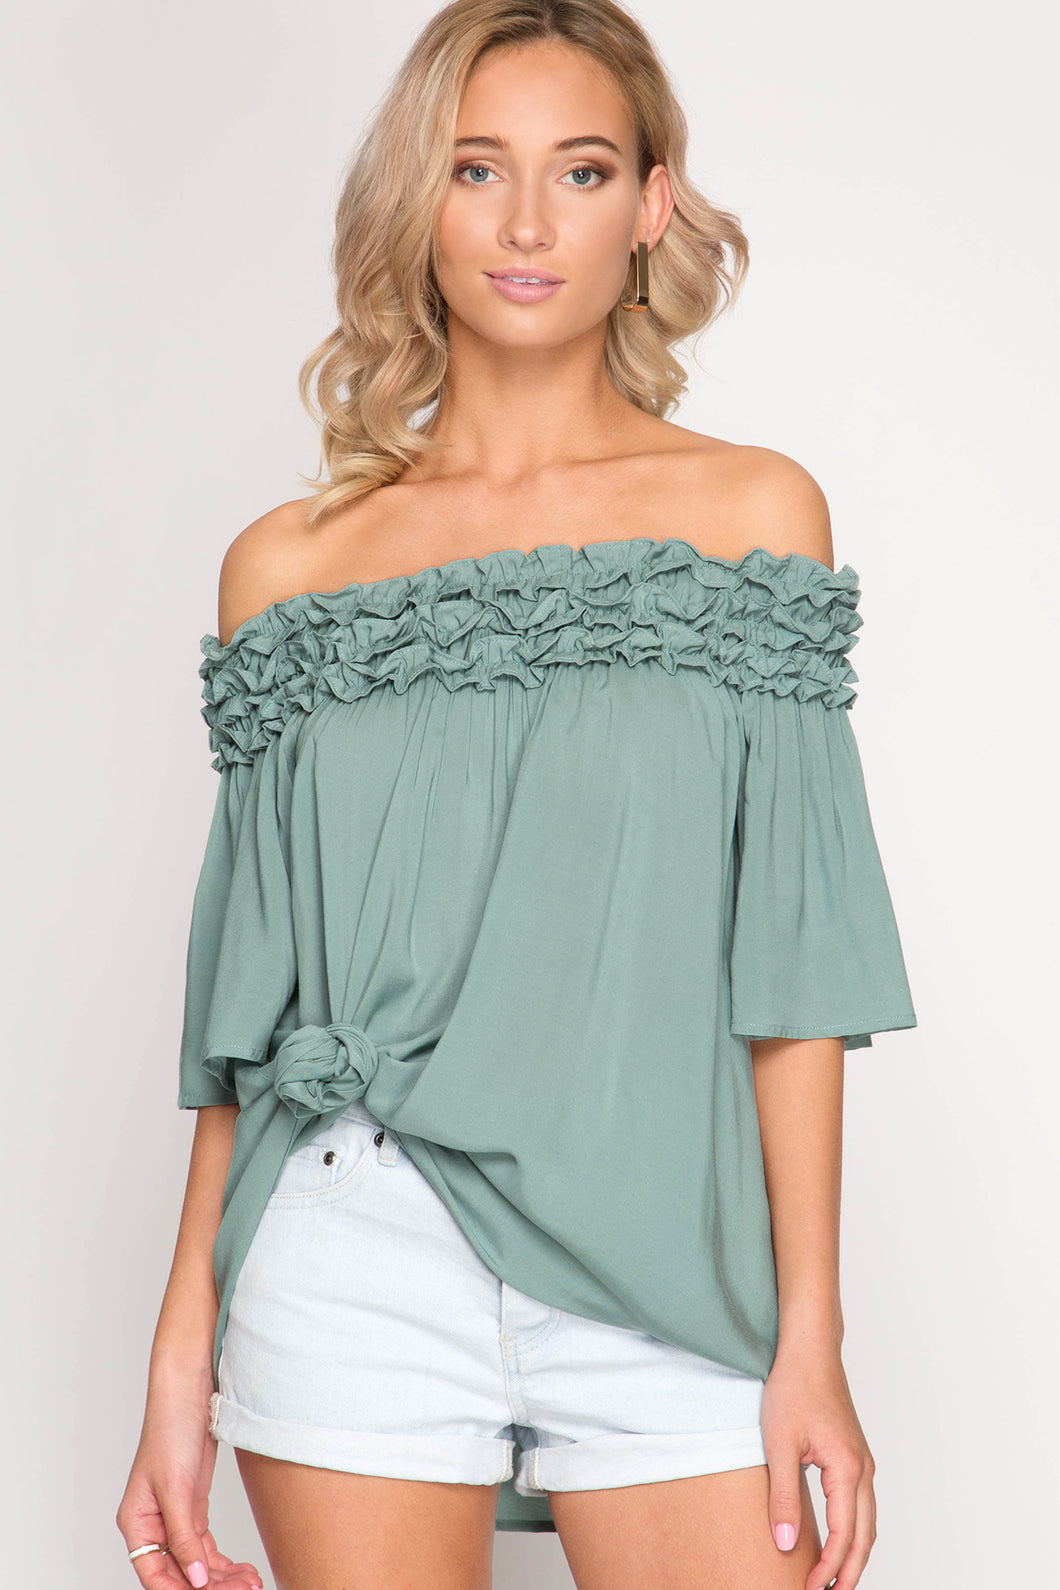 Soft Kiss Tunic Top - Slate